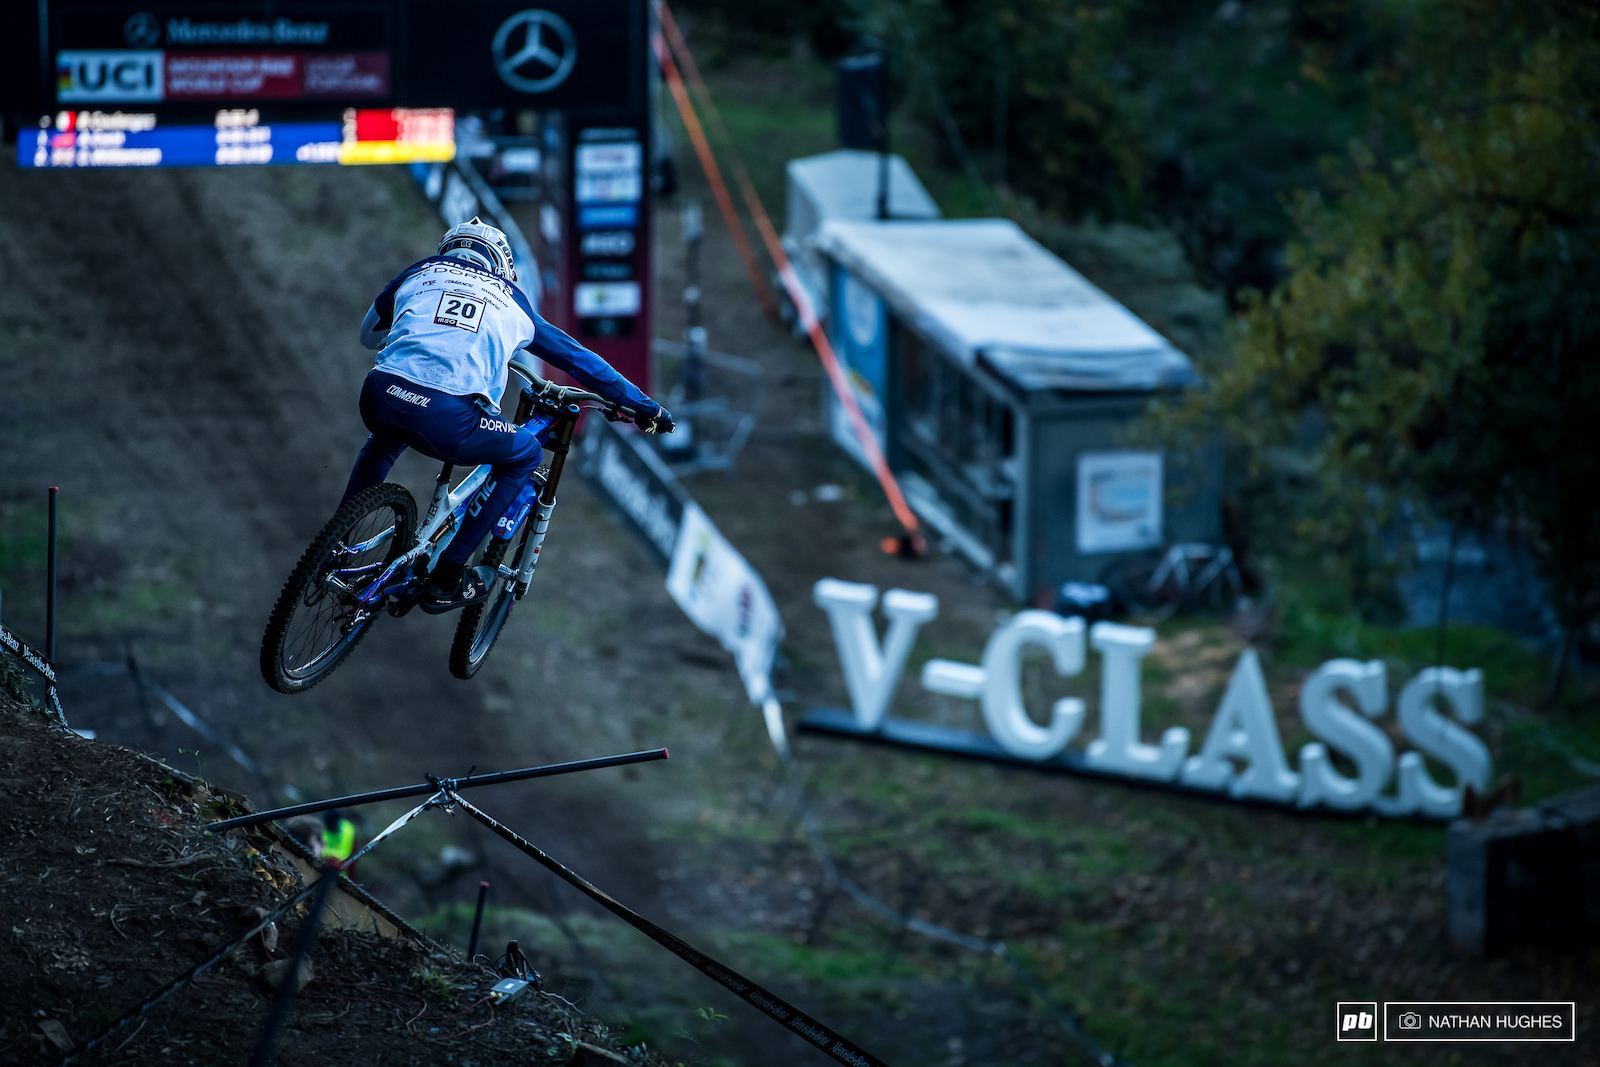 Benoit Coulanges cracks the World Cup top 10 in style with P7.